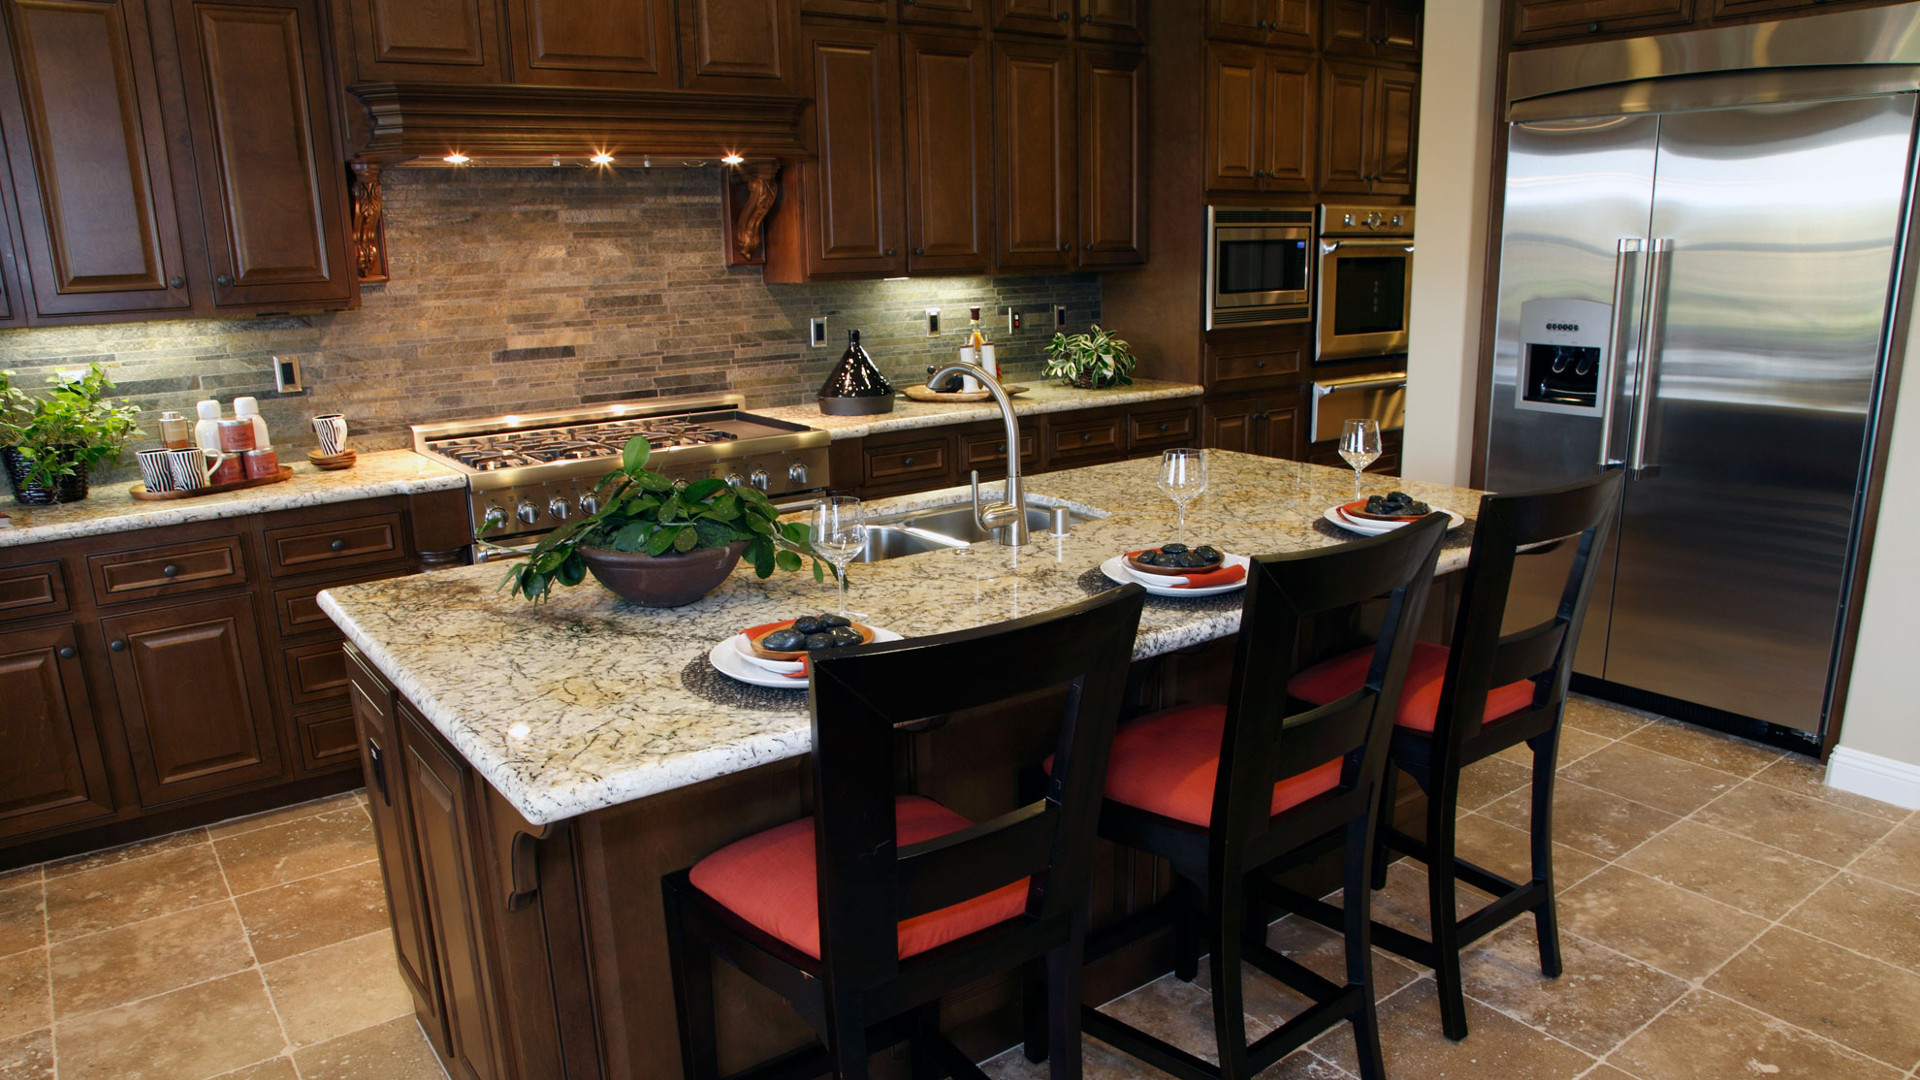 Ship Beautiful Aesthetics in Your Kitchen With Granite Worktop